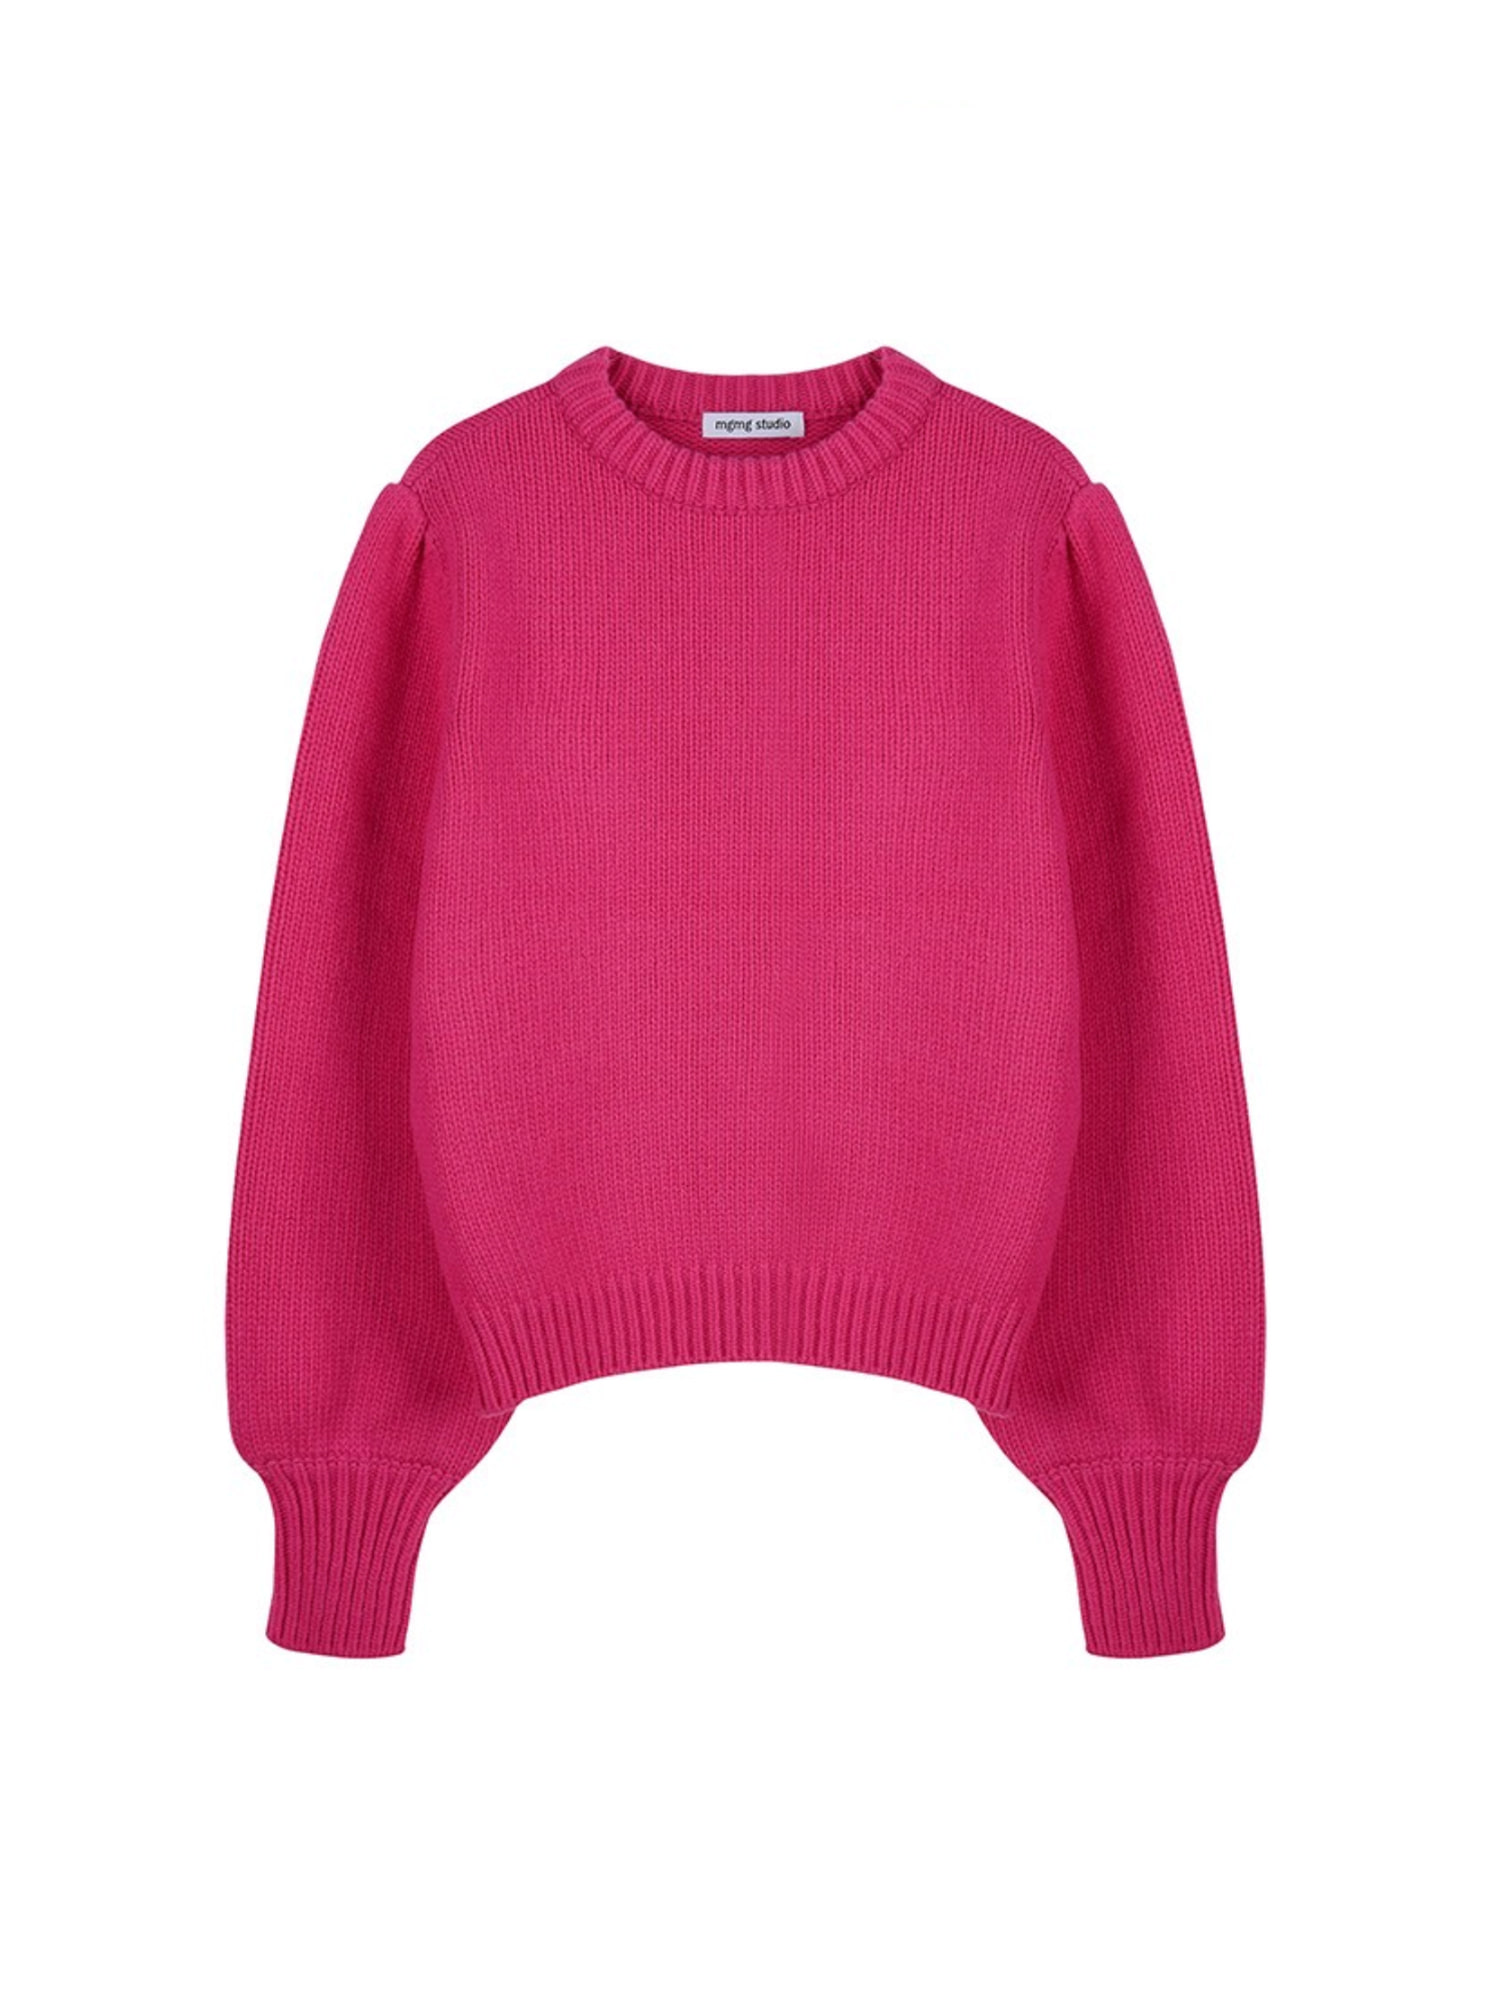 mgmg shirring knit_hot pink